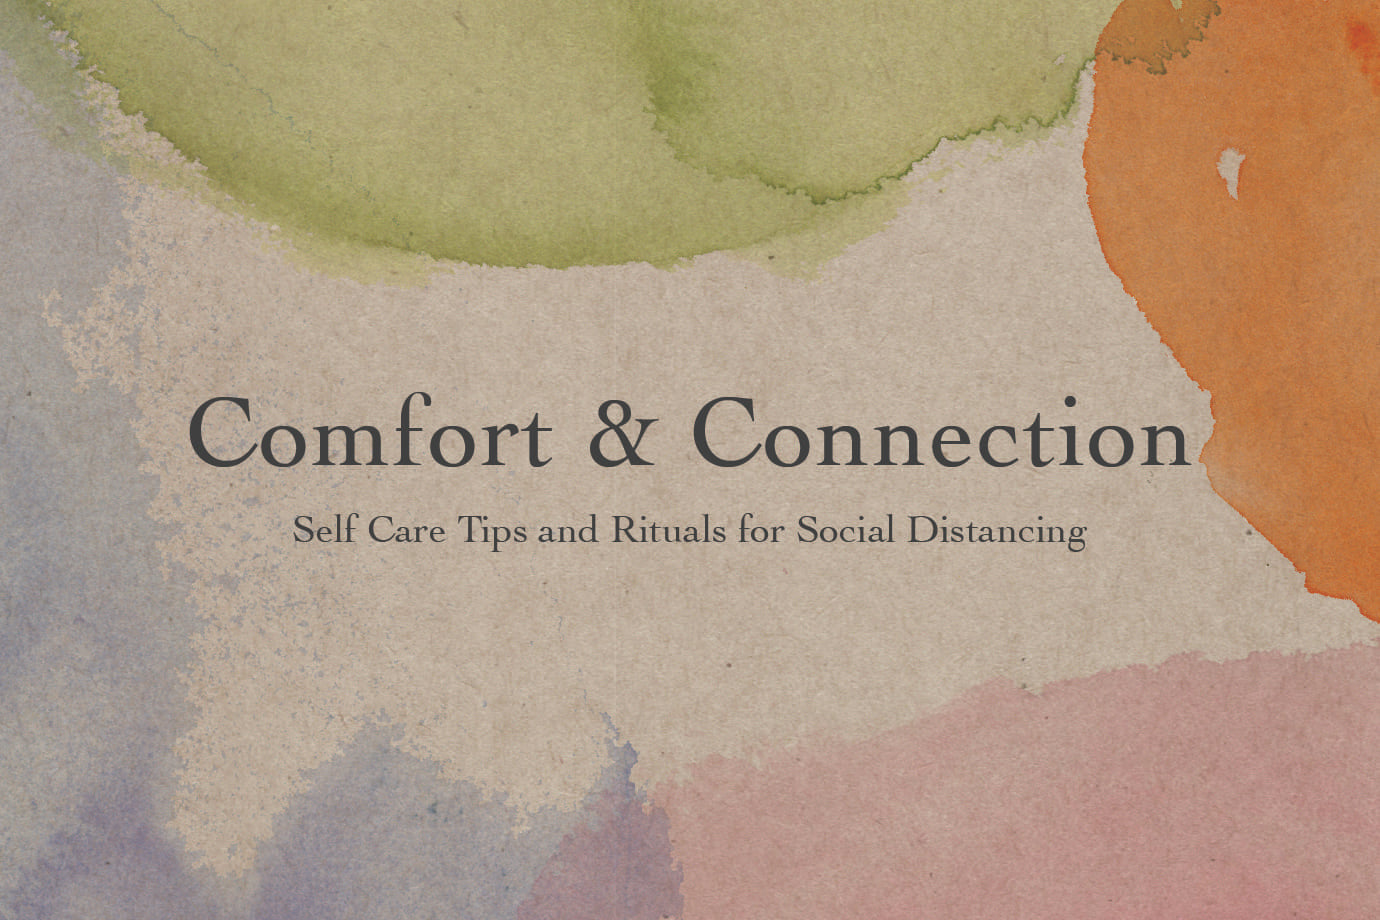 Self Care Tips and Rituals for Social Distancing